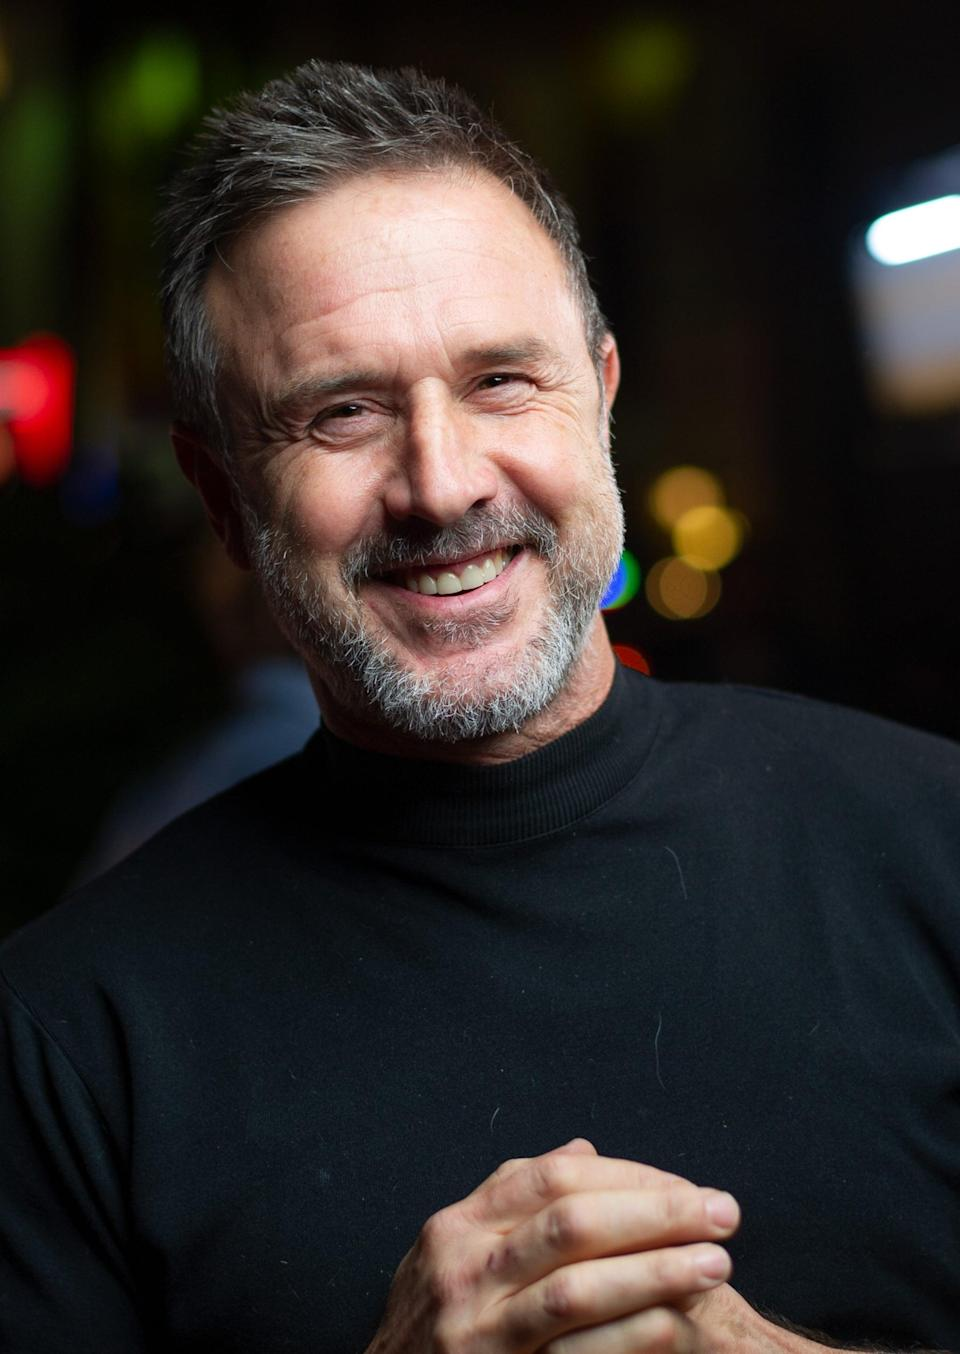 """<p><a href=""""https://www.hollywoodreporter.com/heat-vision/david-arquette-back-as-dewey-riley-spyglass-scream-relaunch-1294991"""" class=""""link rapid-noclick-resp"""" rel=""""nofollow noopener"""" target=""""_blank"""" data-ylk=""""slk:Arquette was the first official member of the cast"""">Arquette was the first official member of the cast</a>, with news of his return breaking on May 18. """"I am thrilled to be playing Dewey again and to reunite with my <strong>Scream</strong> family, old and new,"""" he said in a statement. """"<strong>Scream</strong> has been such a big part of my life, and for both the fans and myself, I look forward to honoring Wes Craven's legacy.""""</p>"""